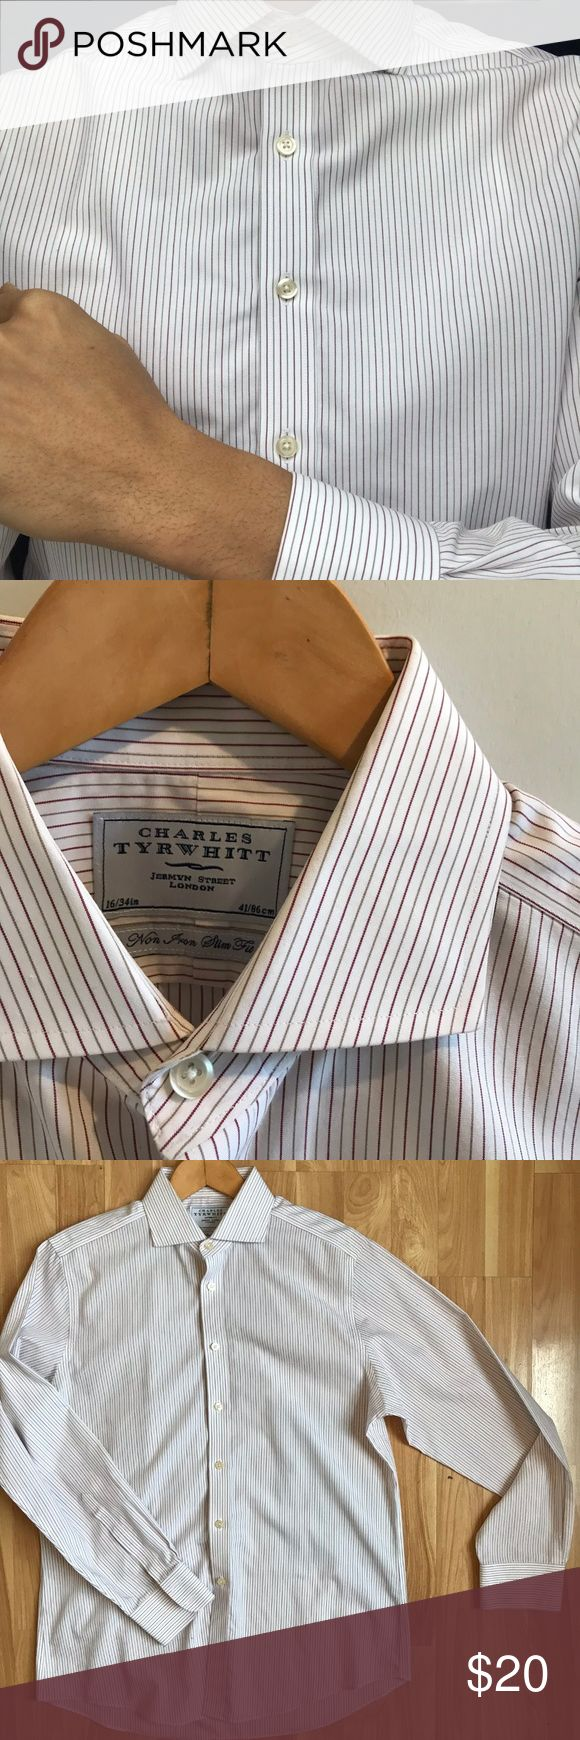 "Charles Tyrwhitt Spread Collar Slim Fit Non-iron Charles Tyrwhitt Jermyn Street London spread collar cotton dress shirt in white with gold and burgundy pinstripes. Premium quality cotton button down shirt with crisp spread collar and cuffs. Modern Slim fit design for fits nicely for an athletic look. English double button cuffs. Contrasts well with dark colors. Sophisticated european look.  Size: 16"" Sleeve: 34-35""  Chest: 44""  Length: 33"" Color: White with gold and burgundy Fabric: 100%…"